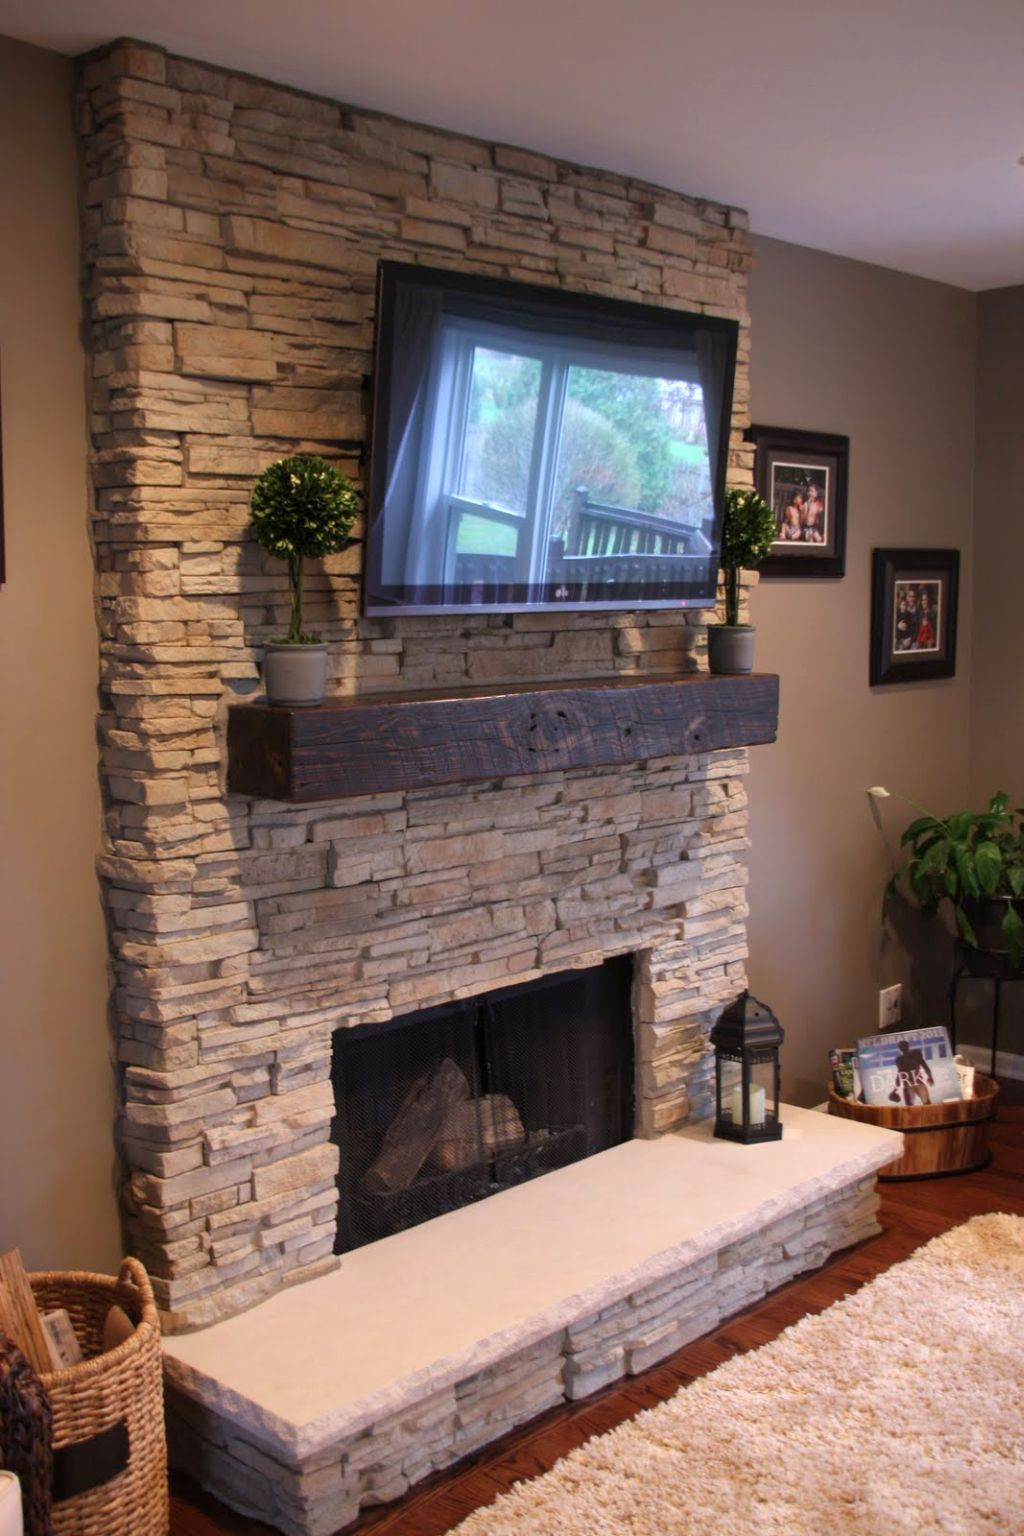 20 cozy corner fireplace ideas for your living room built in unit home fireplace stone - Images of stone fireplaces ...